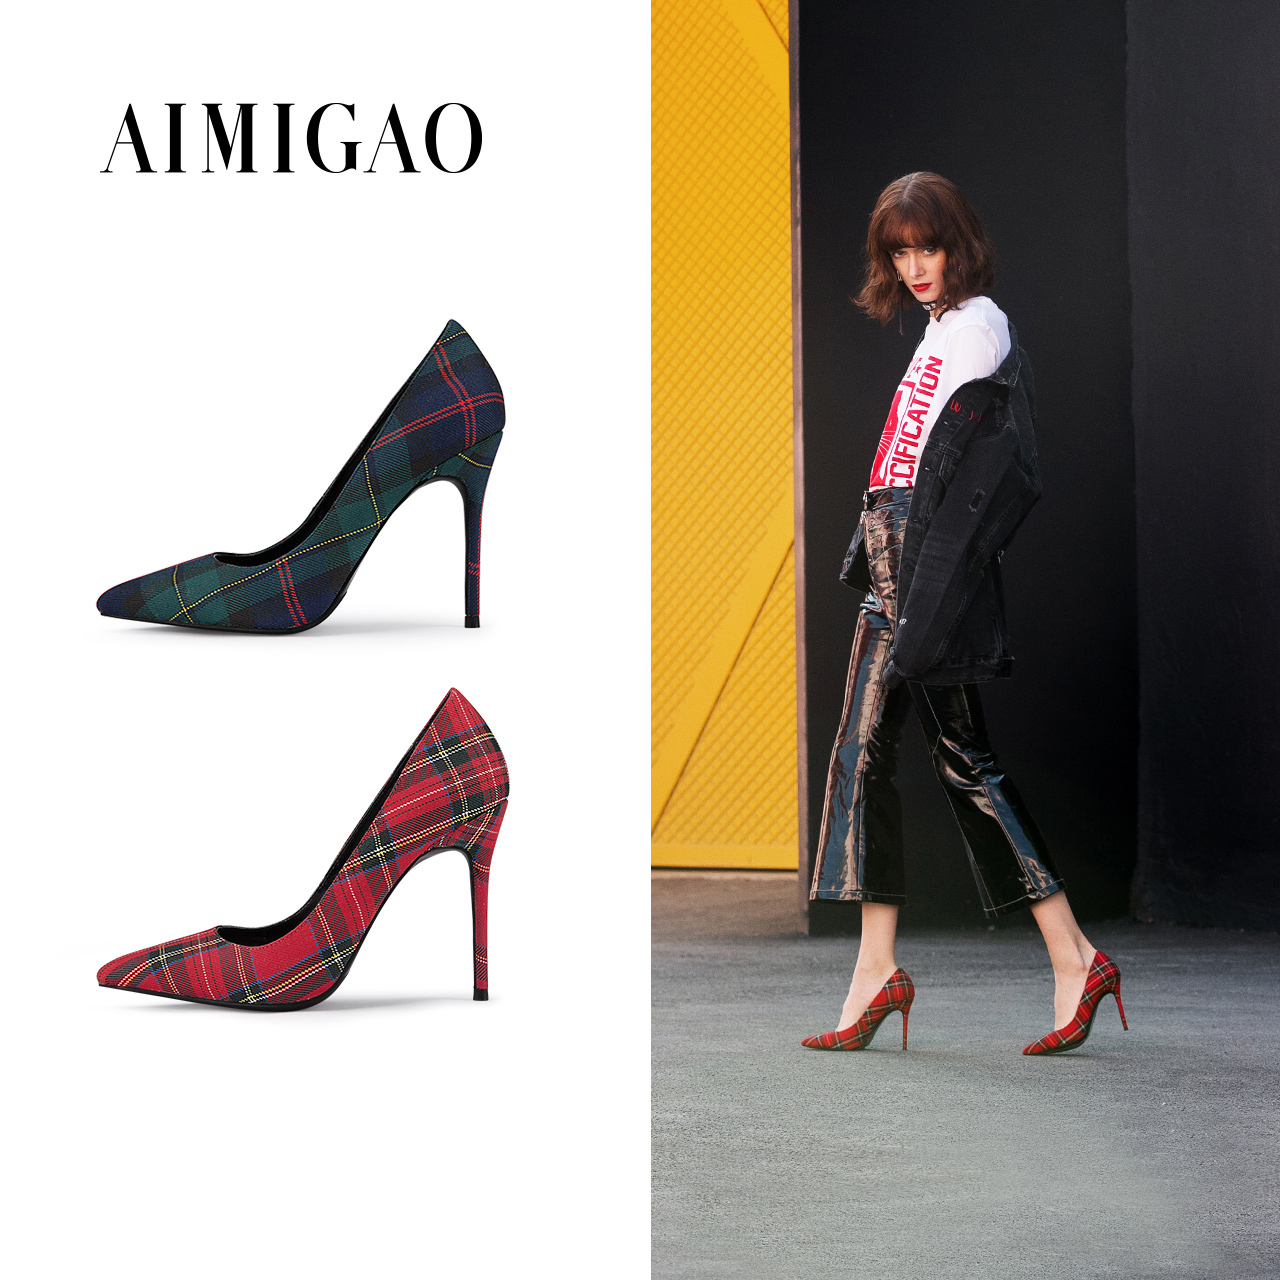 AIMIGAO Stylish Plaid Pointed Toe Women Pumps Heel Shoes Sexy High Heels Women Party Shoes Ladies Pumps Shoes 2018 Spring New baoyafang new arrival ladies shoes fashion pointed toe high heels pumps women office shoes 7cm heel sexy girls wedding shoes